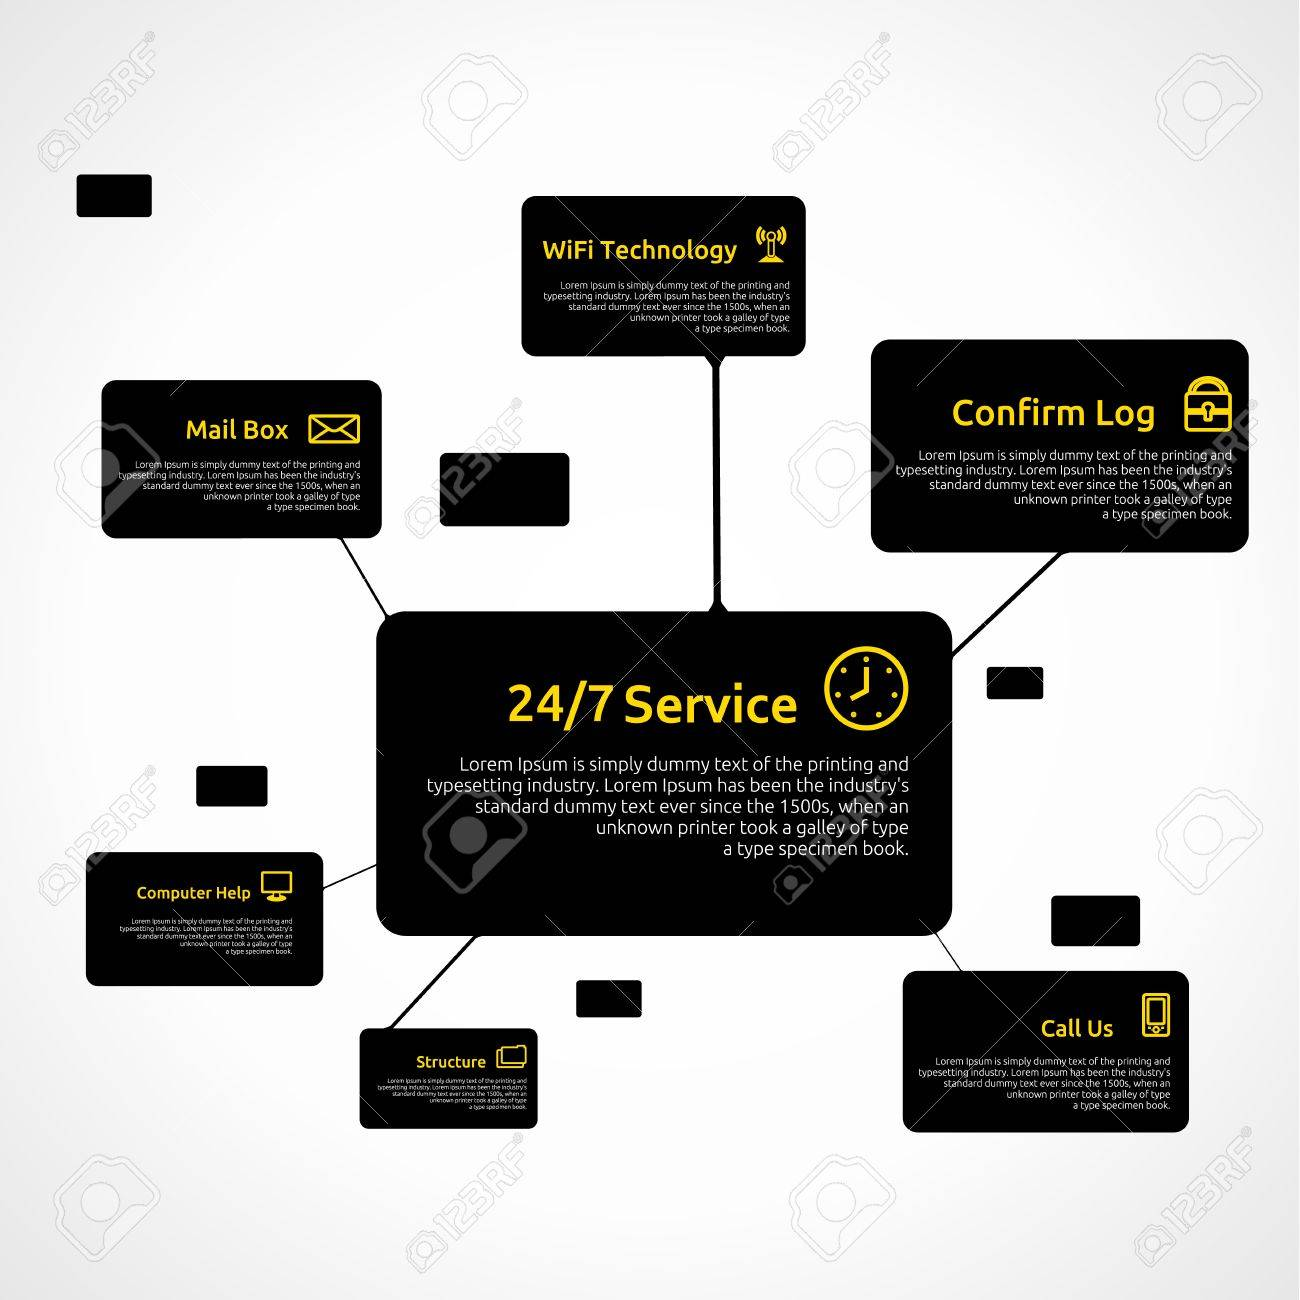 Infographic Template. Business Telecommunication Technology. Clean Background. Stock Vector - 16876896